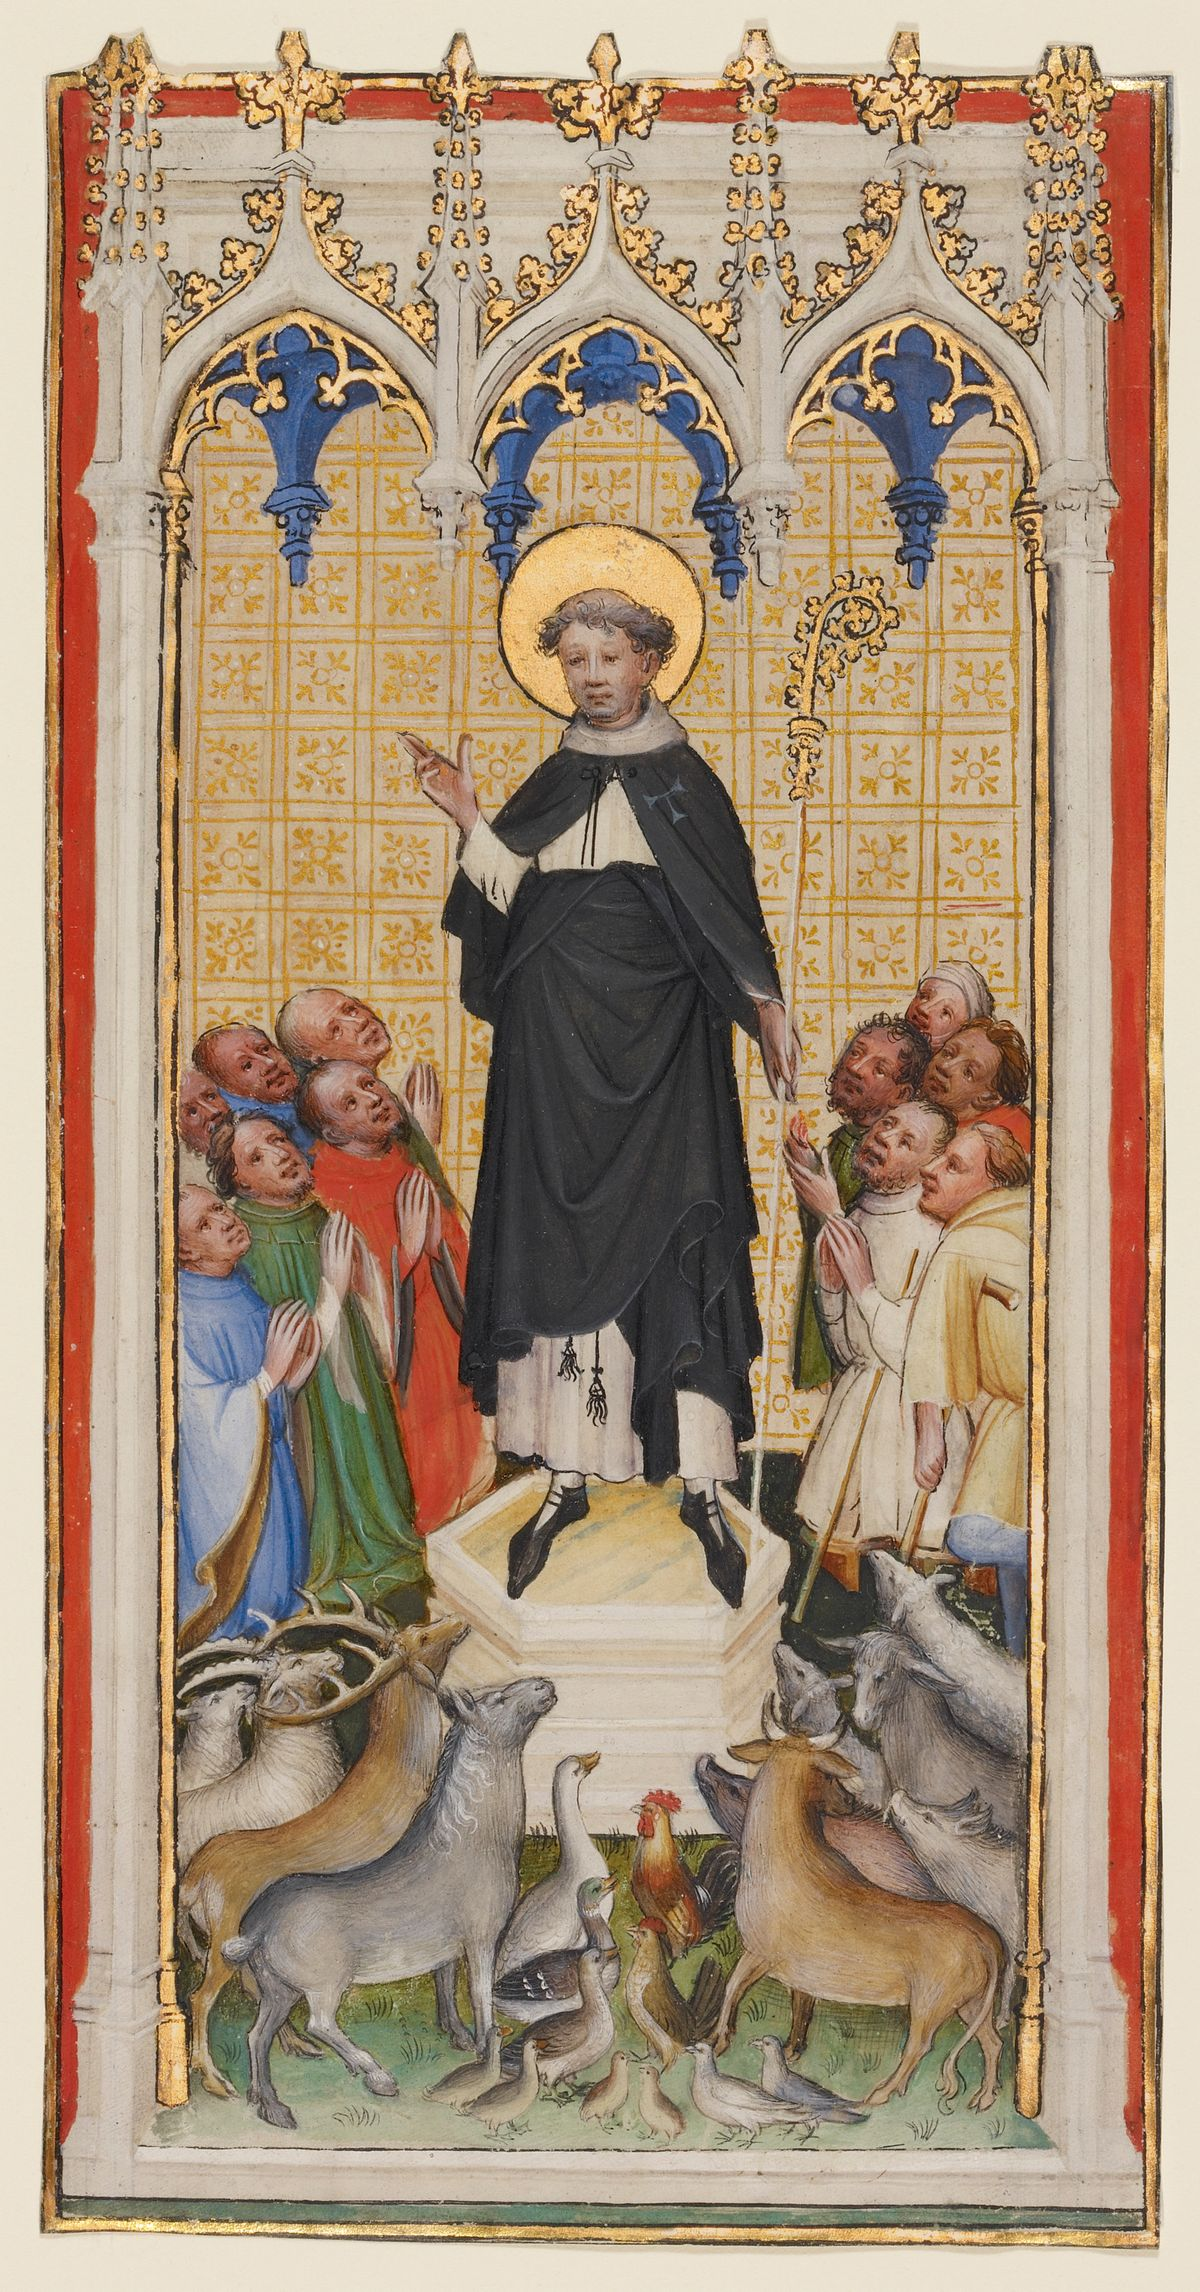 Saint Anthony Abbot by Master of St. Veronica (1400-1410) - Public Domain Catholic Painting